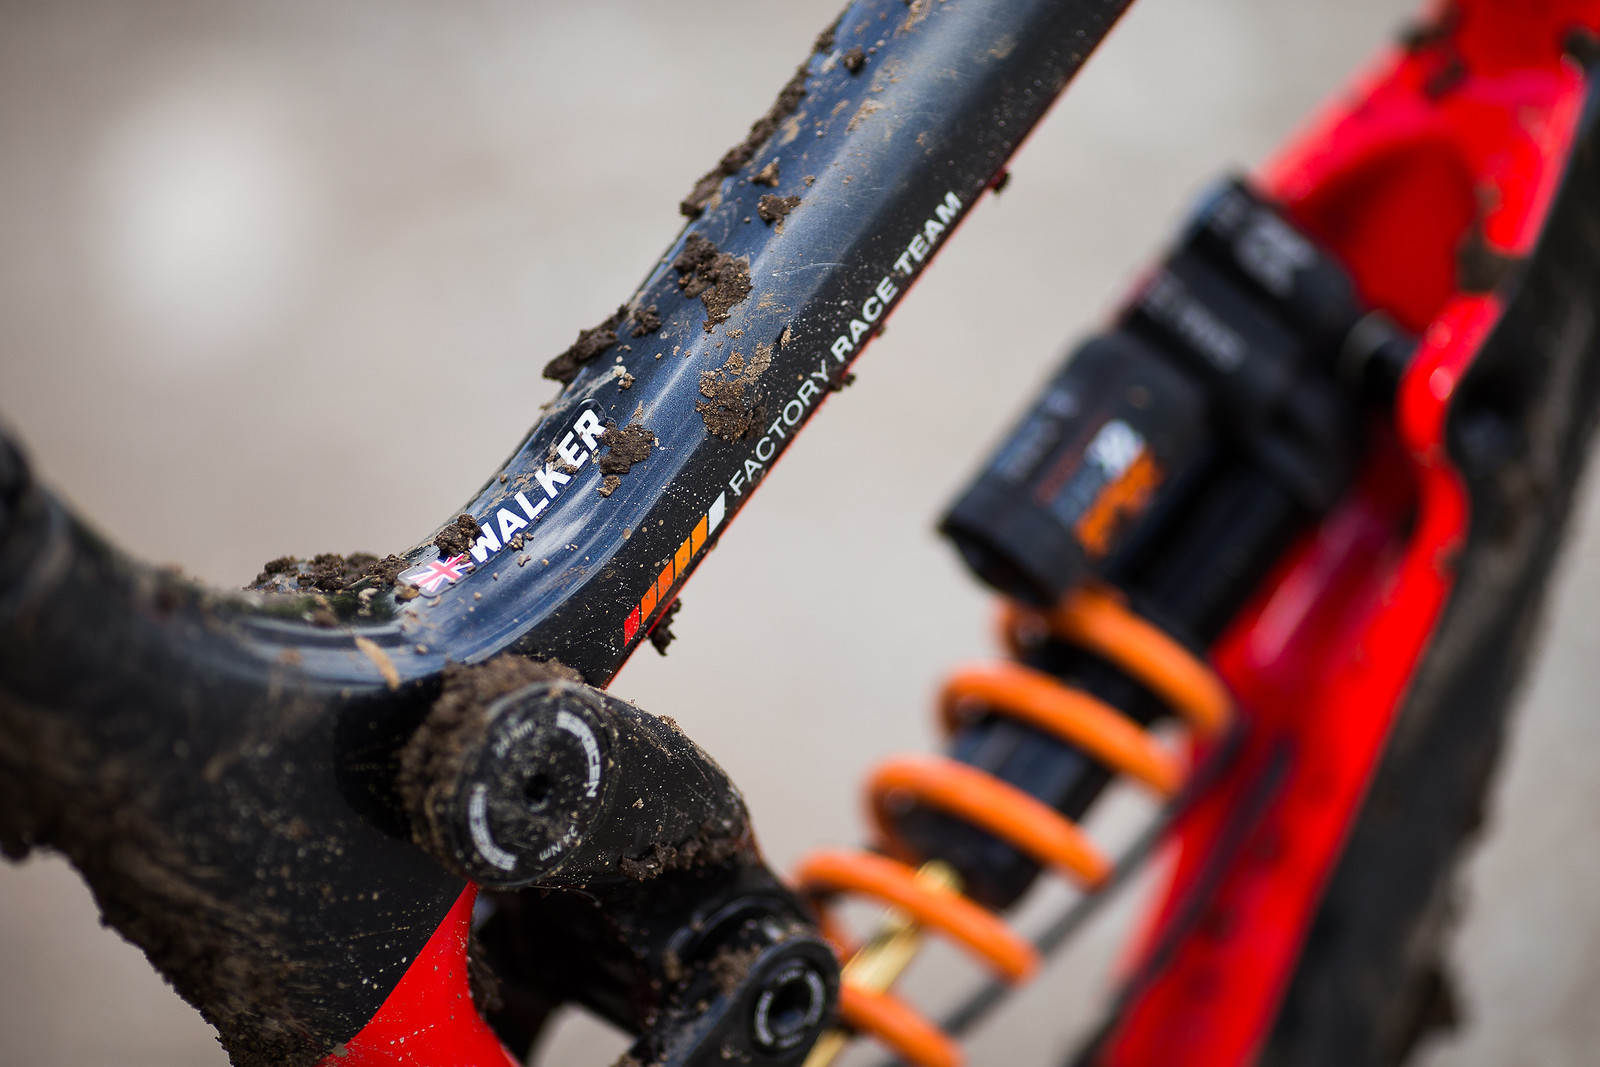 Proof It's Matt Walker's Bike - WINNING BIKE: Matt Walker's Saracen Myst - Mountain Biking Pictures - Vital MTB